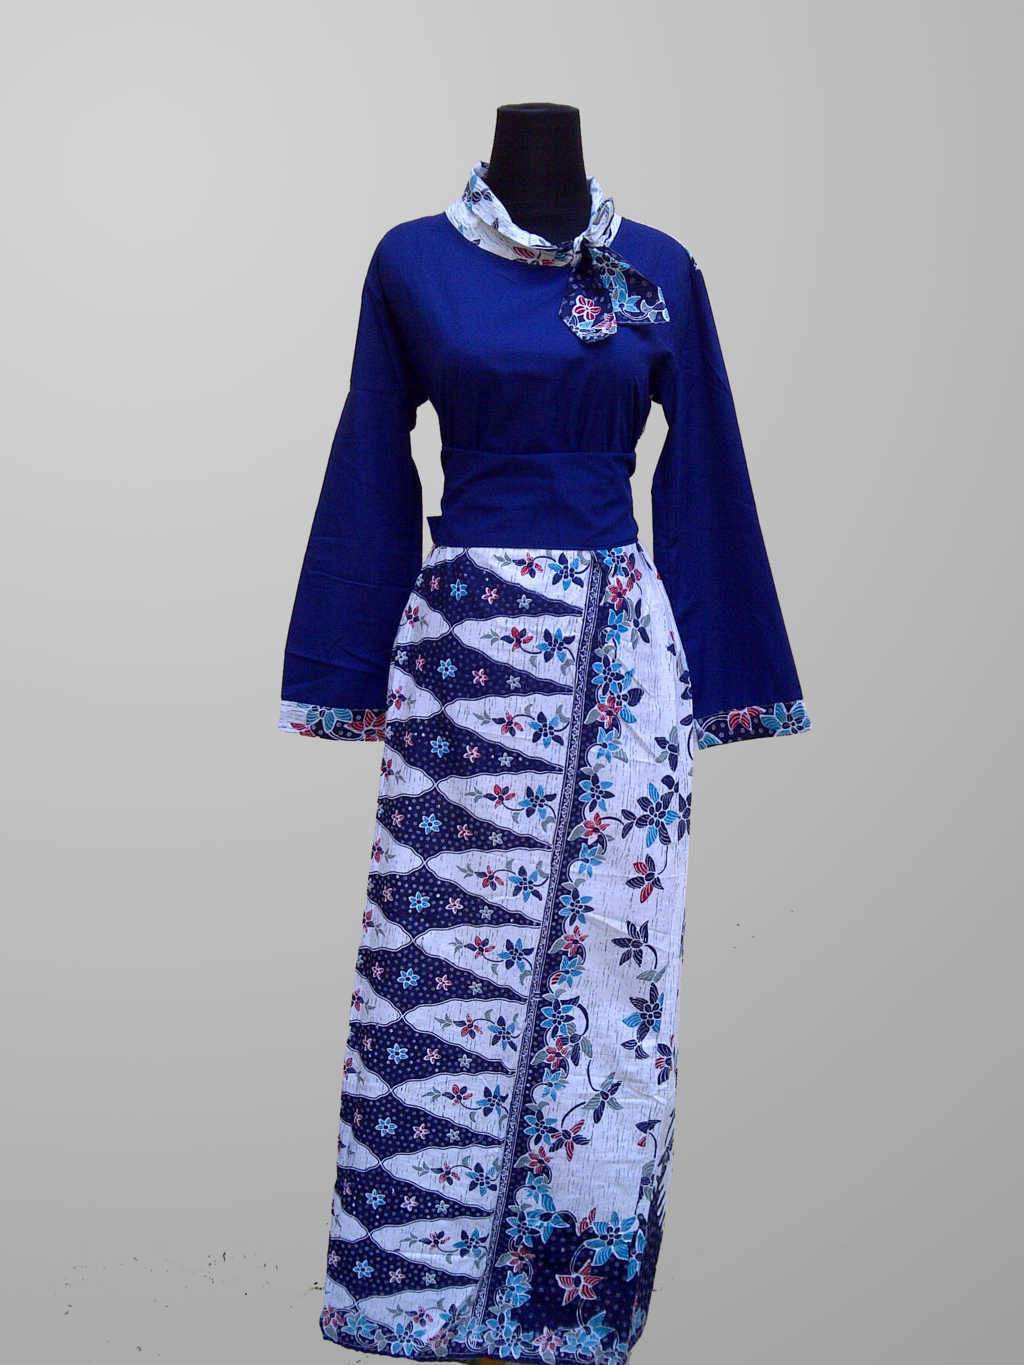 Model Baju Gamis Batik Non Formal 2